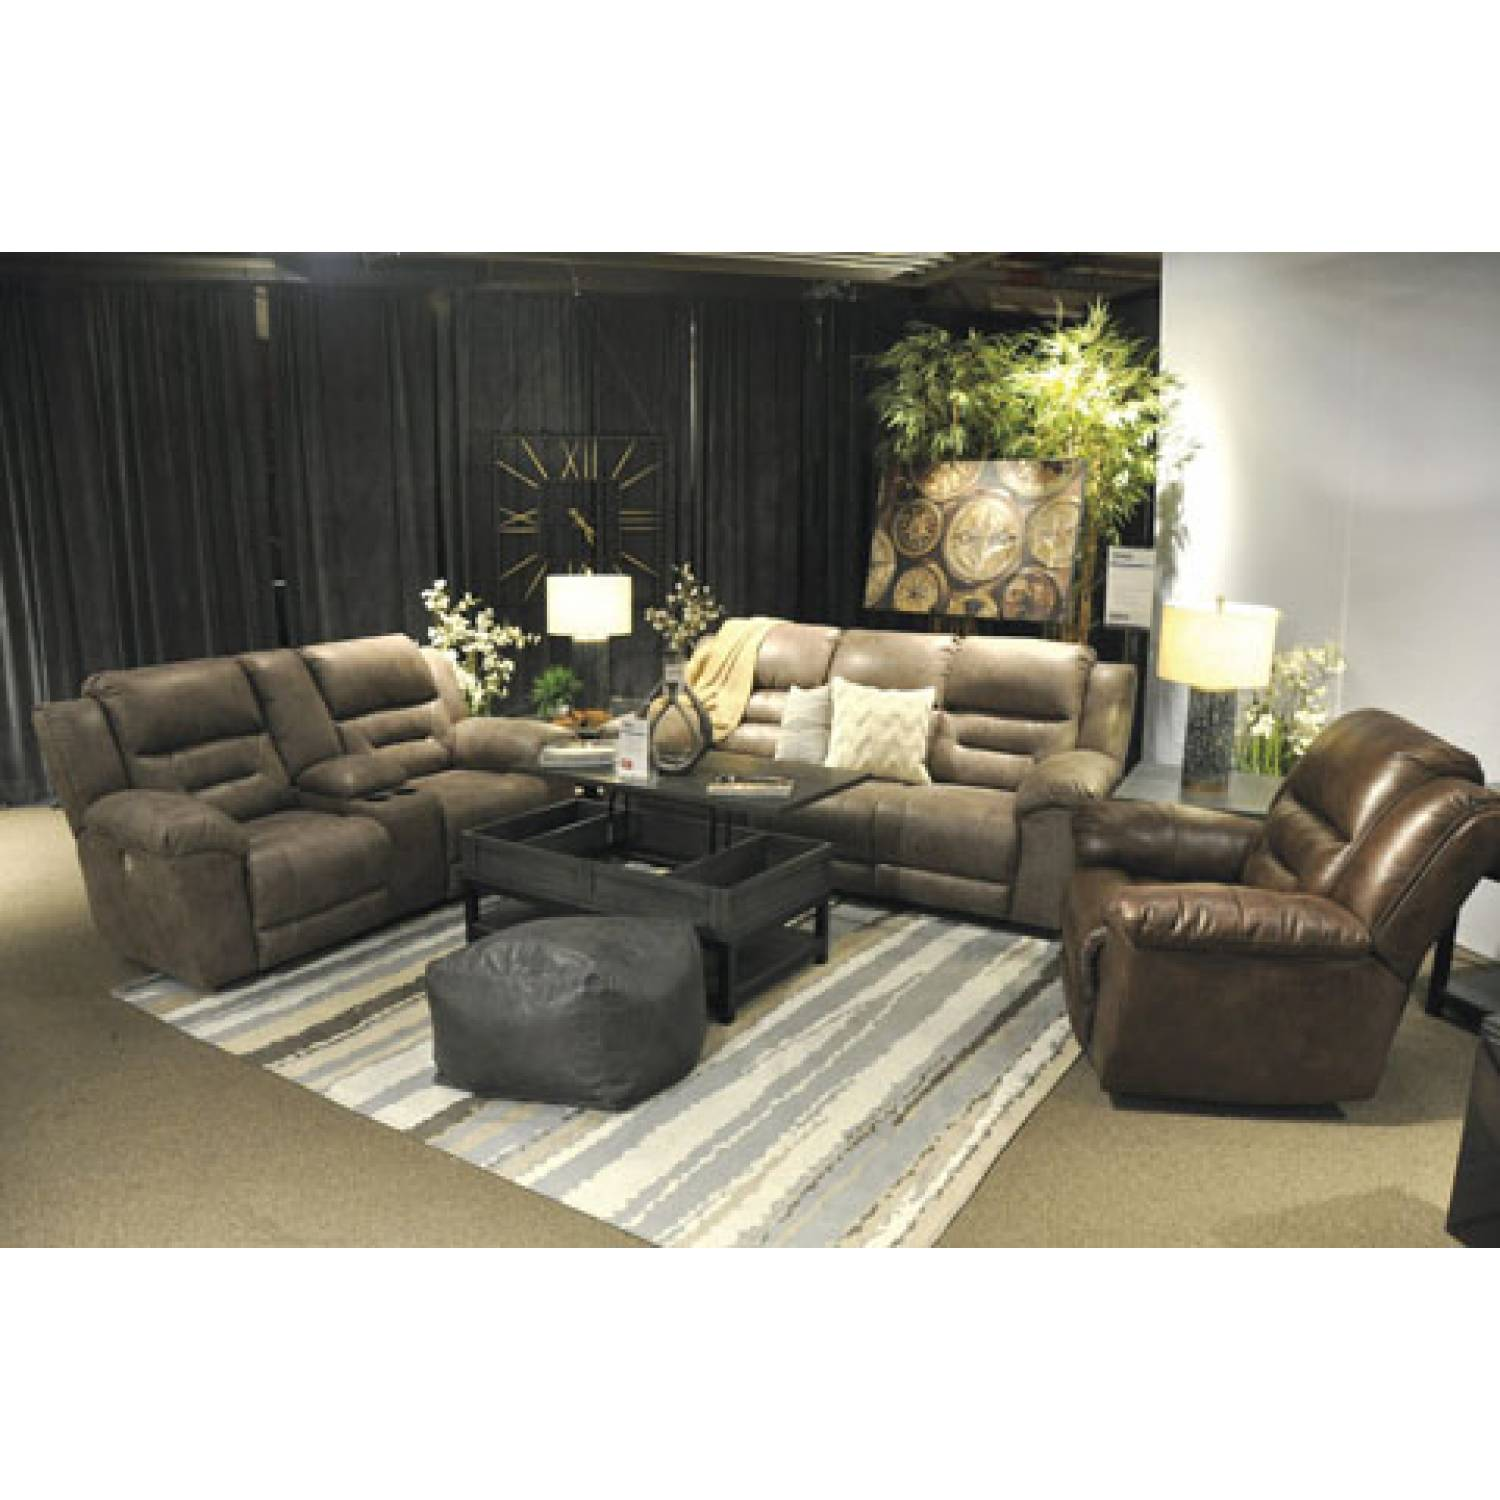 39905 Stoneland 3PC SETS Reclining Sofa + DBL REC Loveseat w/Console +  Rocker Recliner